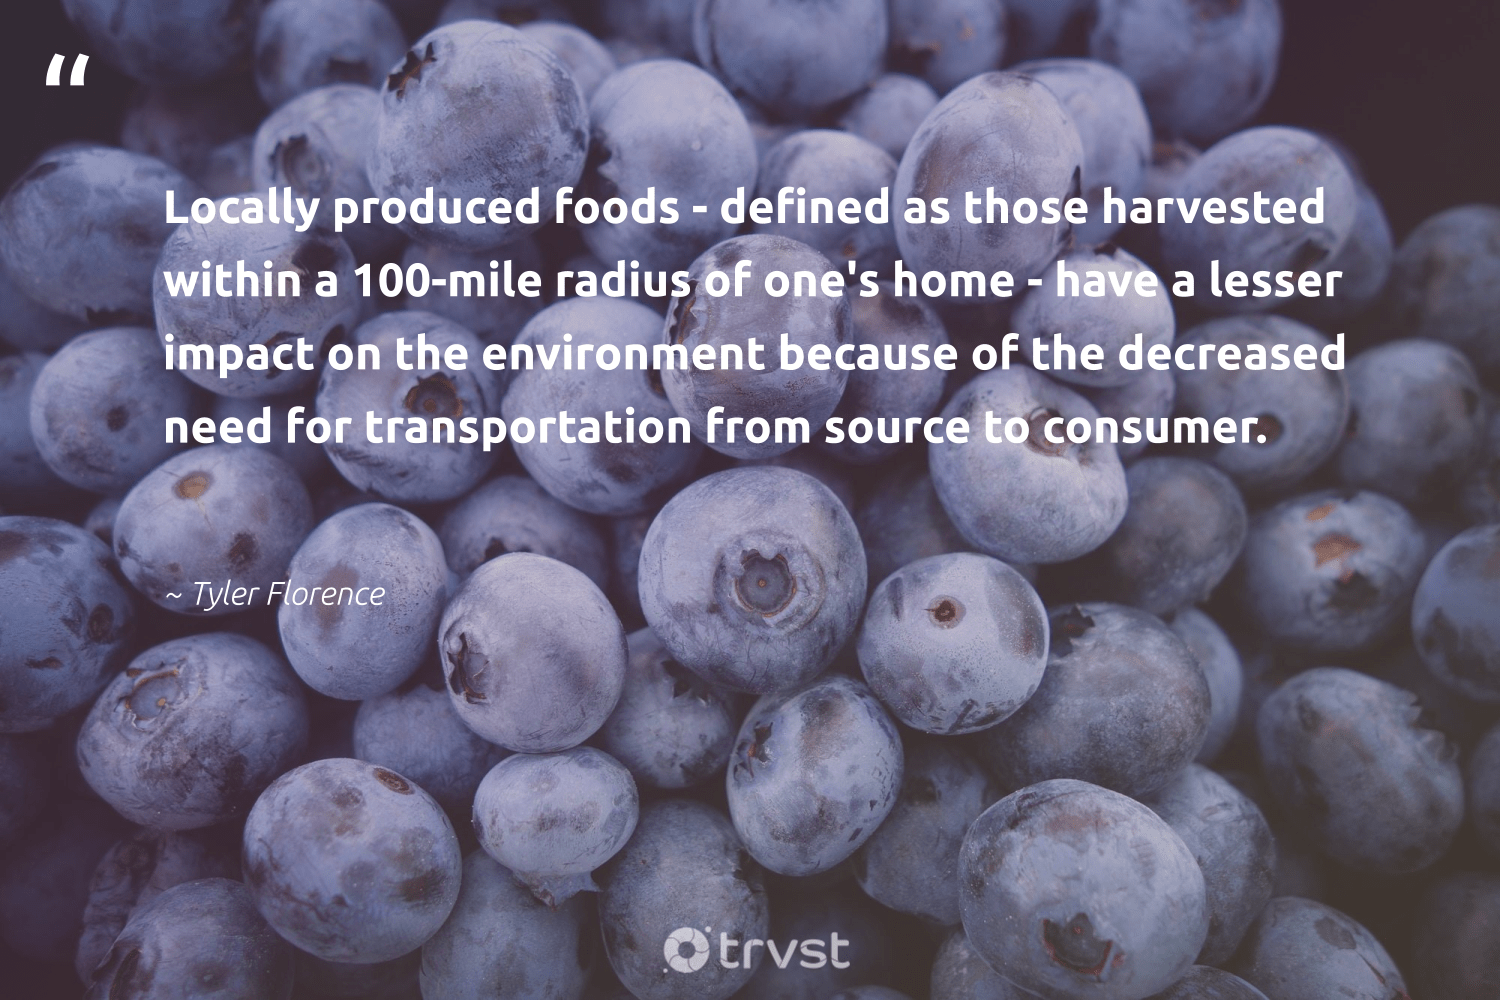 """Locally produced foods - defined as those harvested within a 100-mile radius of one's home - have a lesser impact on the environment because of the decreased need for transportation from source to consumer.""  - Tyler Florence #trvst #quotes #impact #environment #nature #nevergiveup #naturelovers #thinkgreen #conservation #health #natureseekers #socialchange"